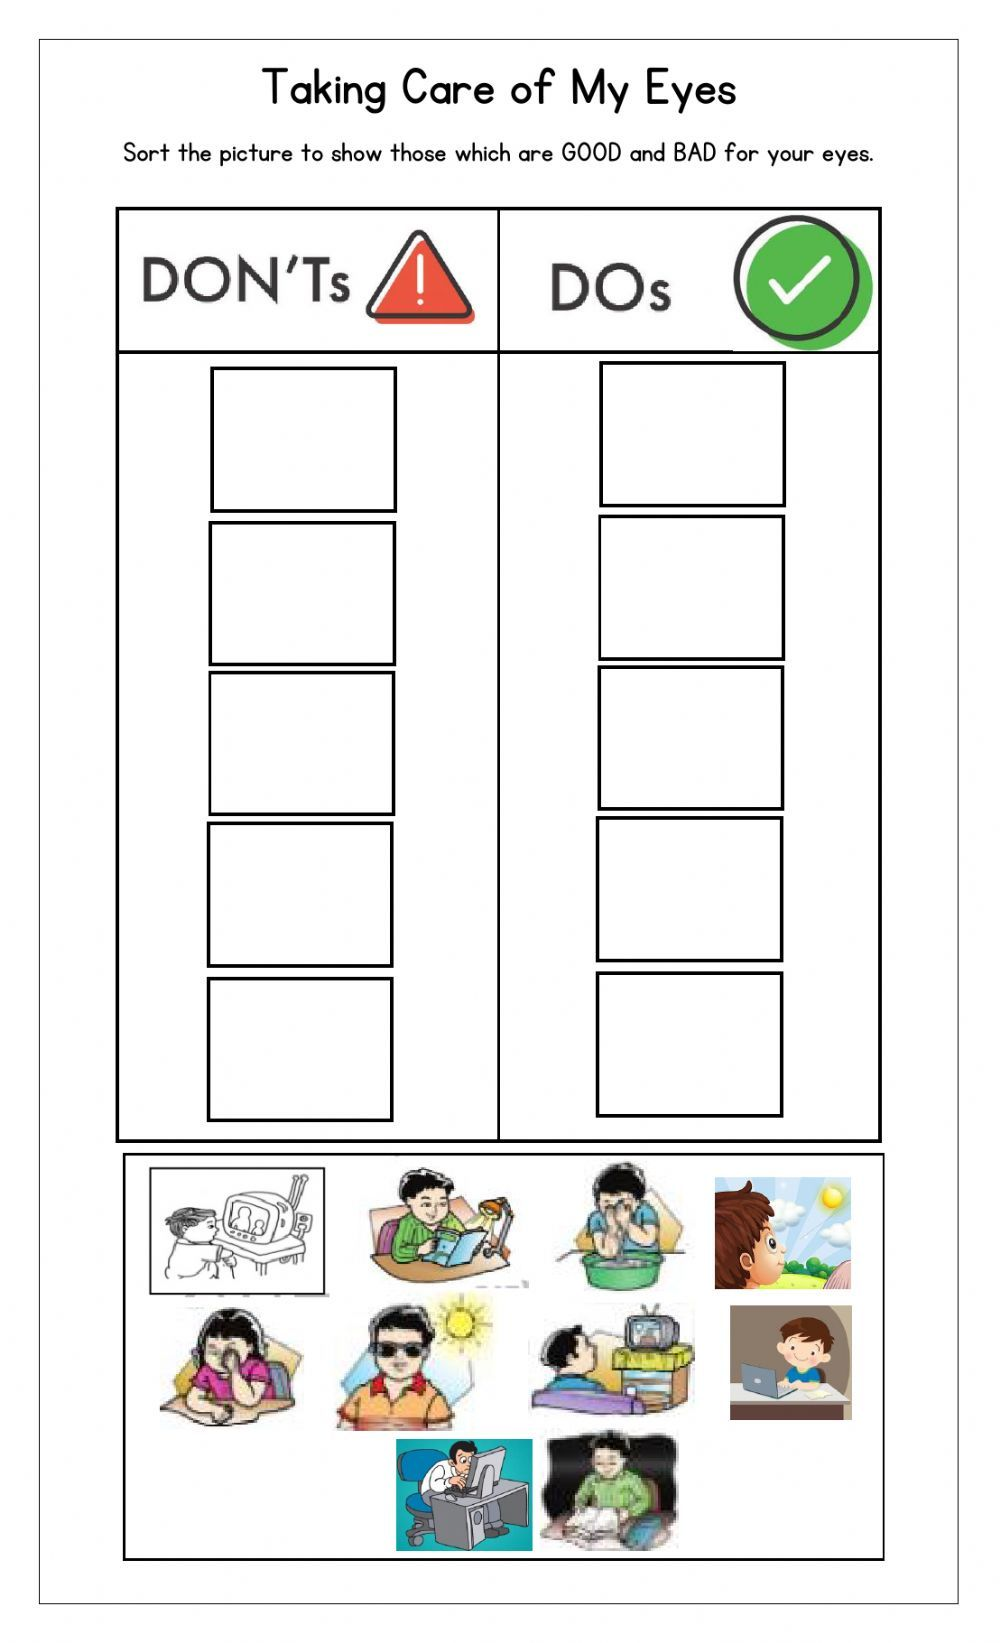 Taking Care Of My Eyes Interactive Worksheet Eye Lesson Daily Lesson Plan English Worksheets For Kids [ 1643 x 1000 Pixel ]